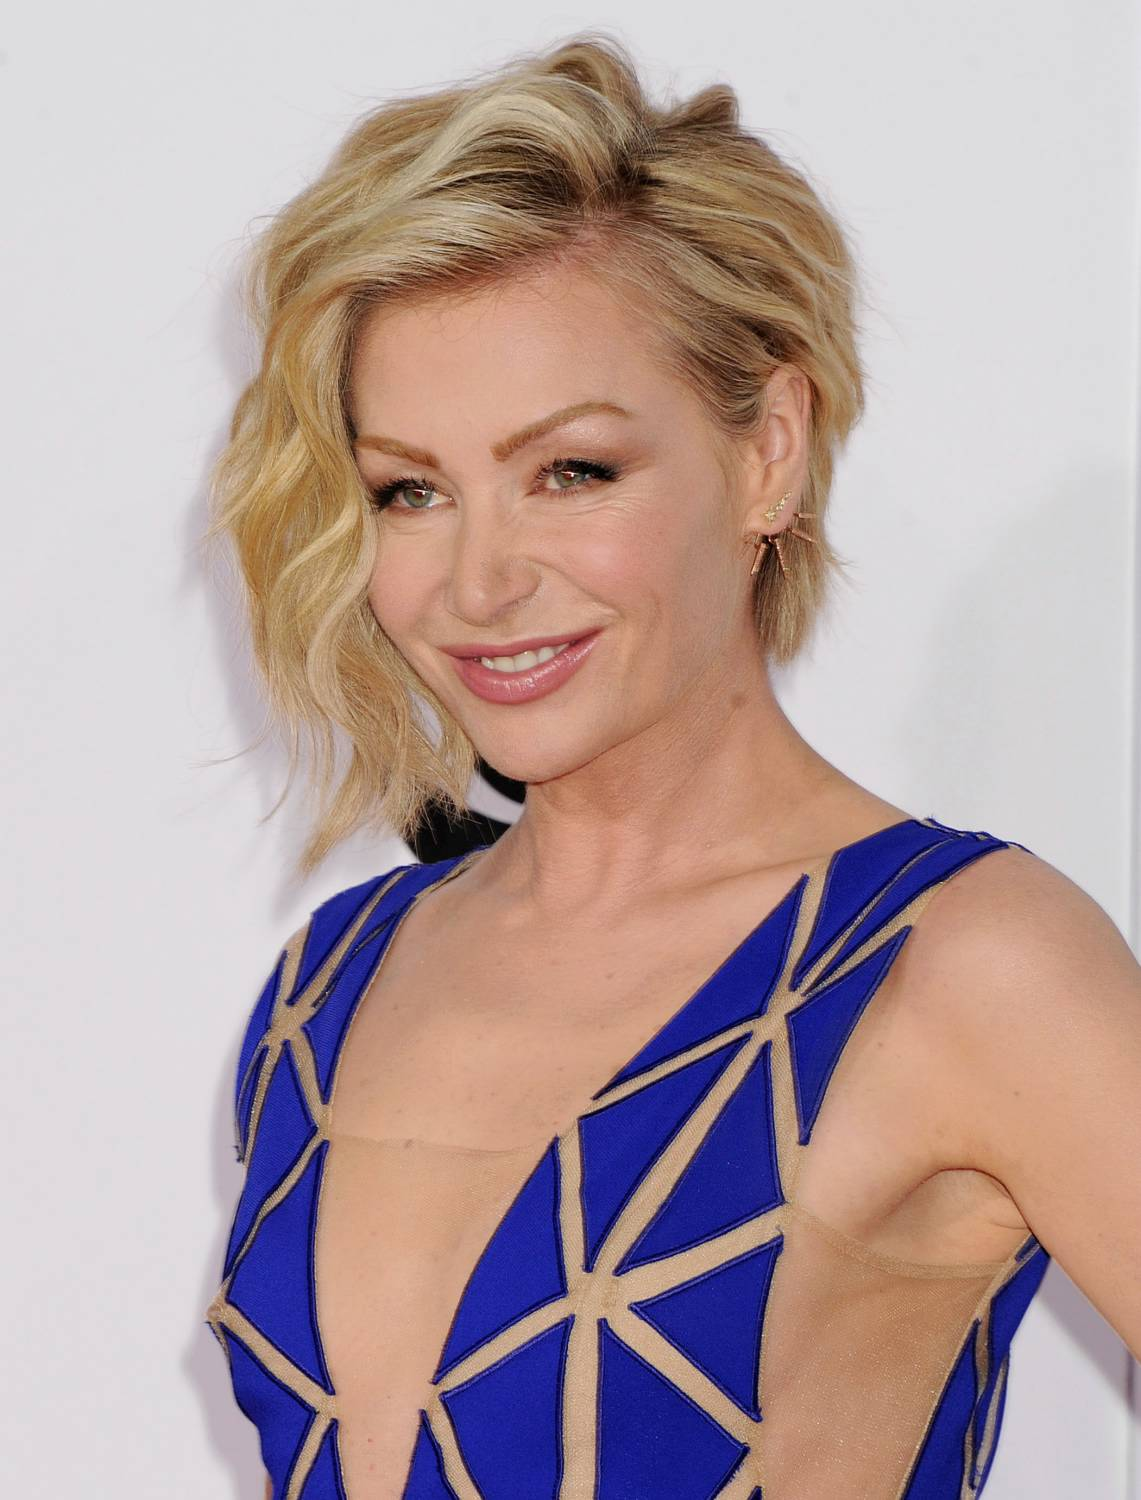 Ellen Degeneres Portia De Rossi Jpg Pictures to pin on Pinterest